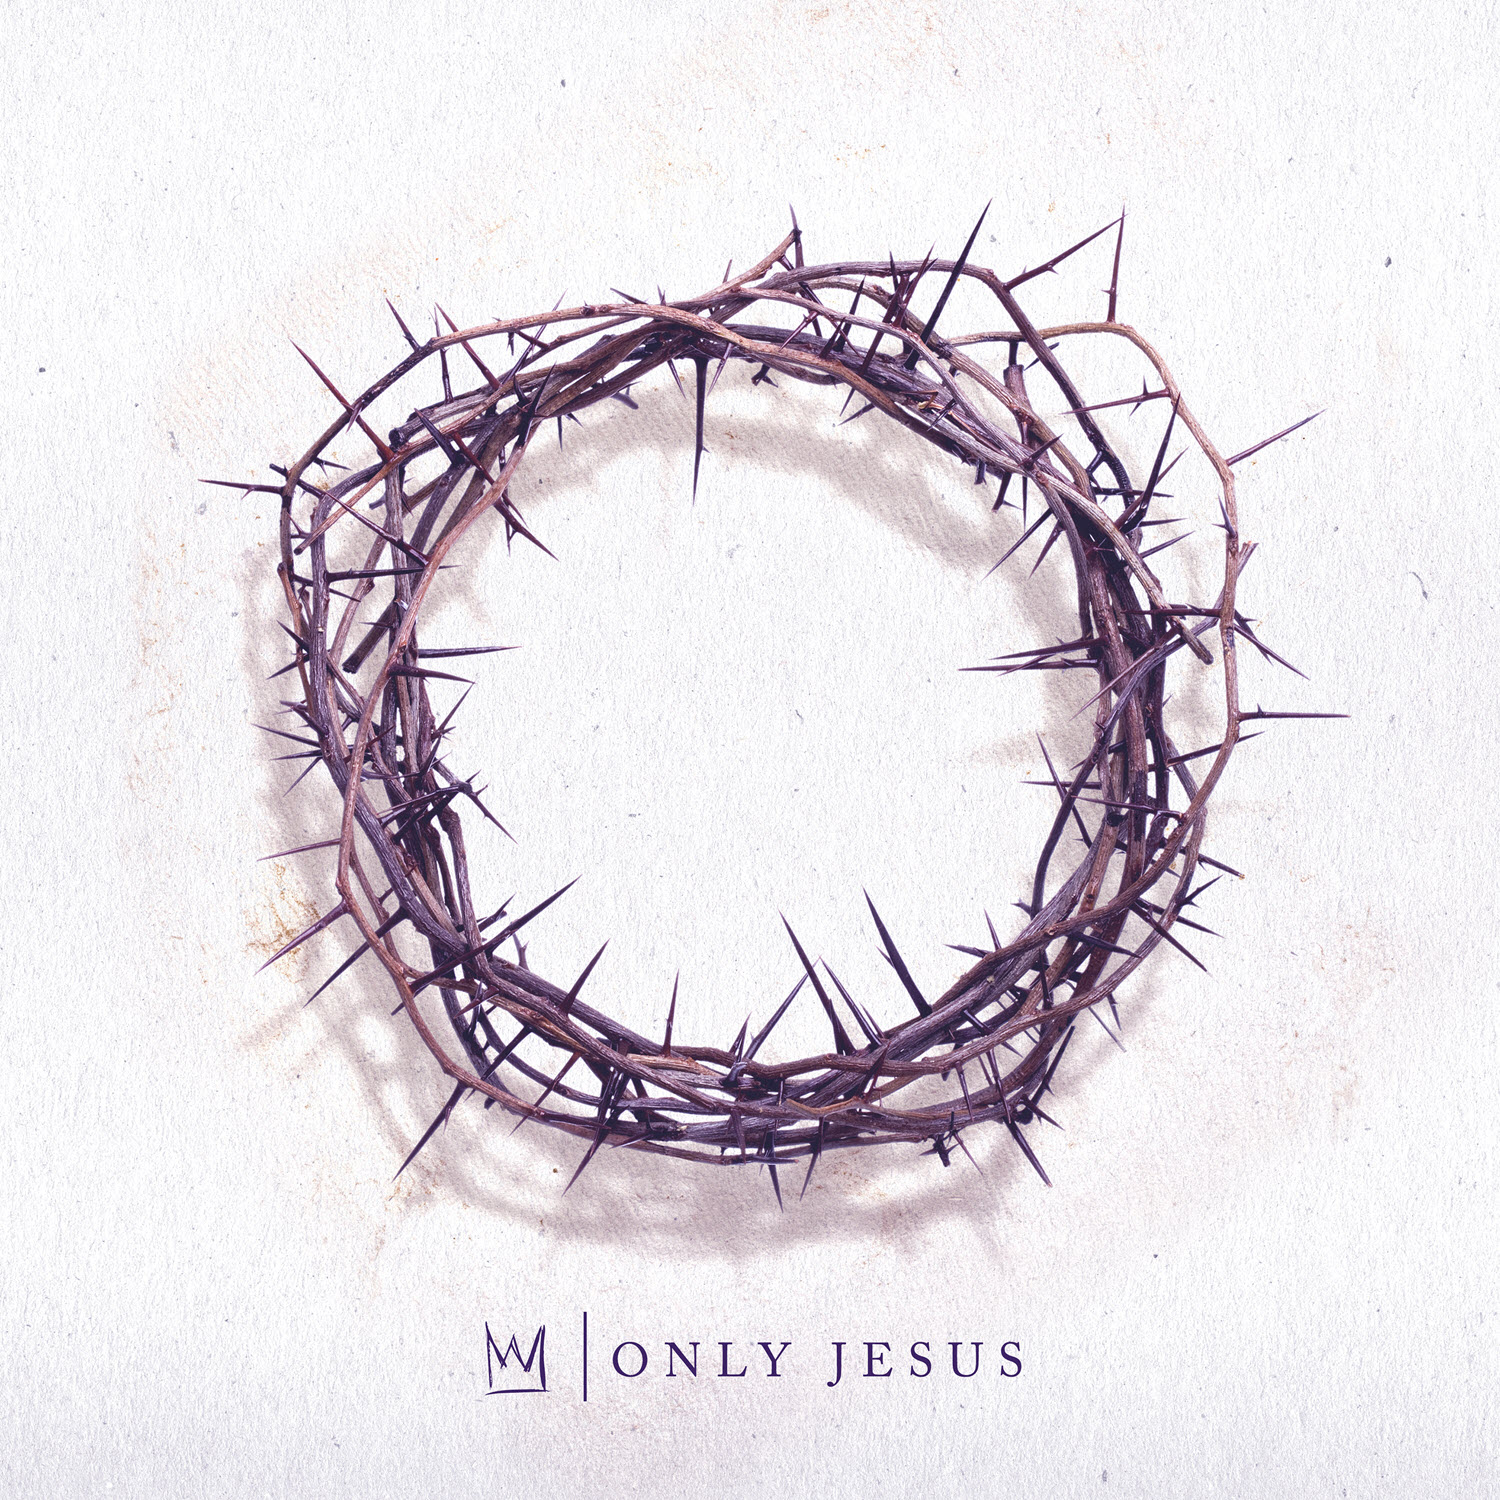 Only Jesus (Single)